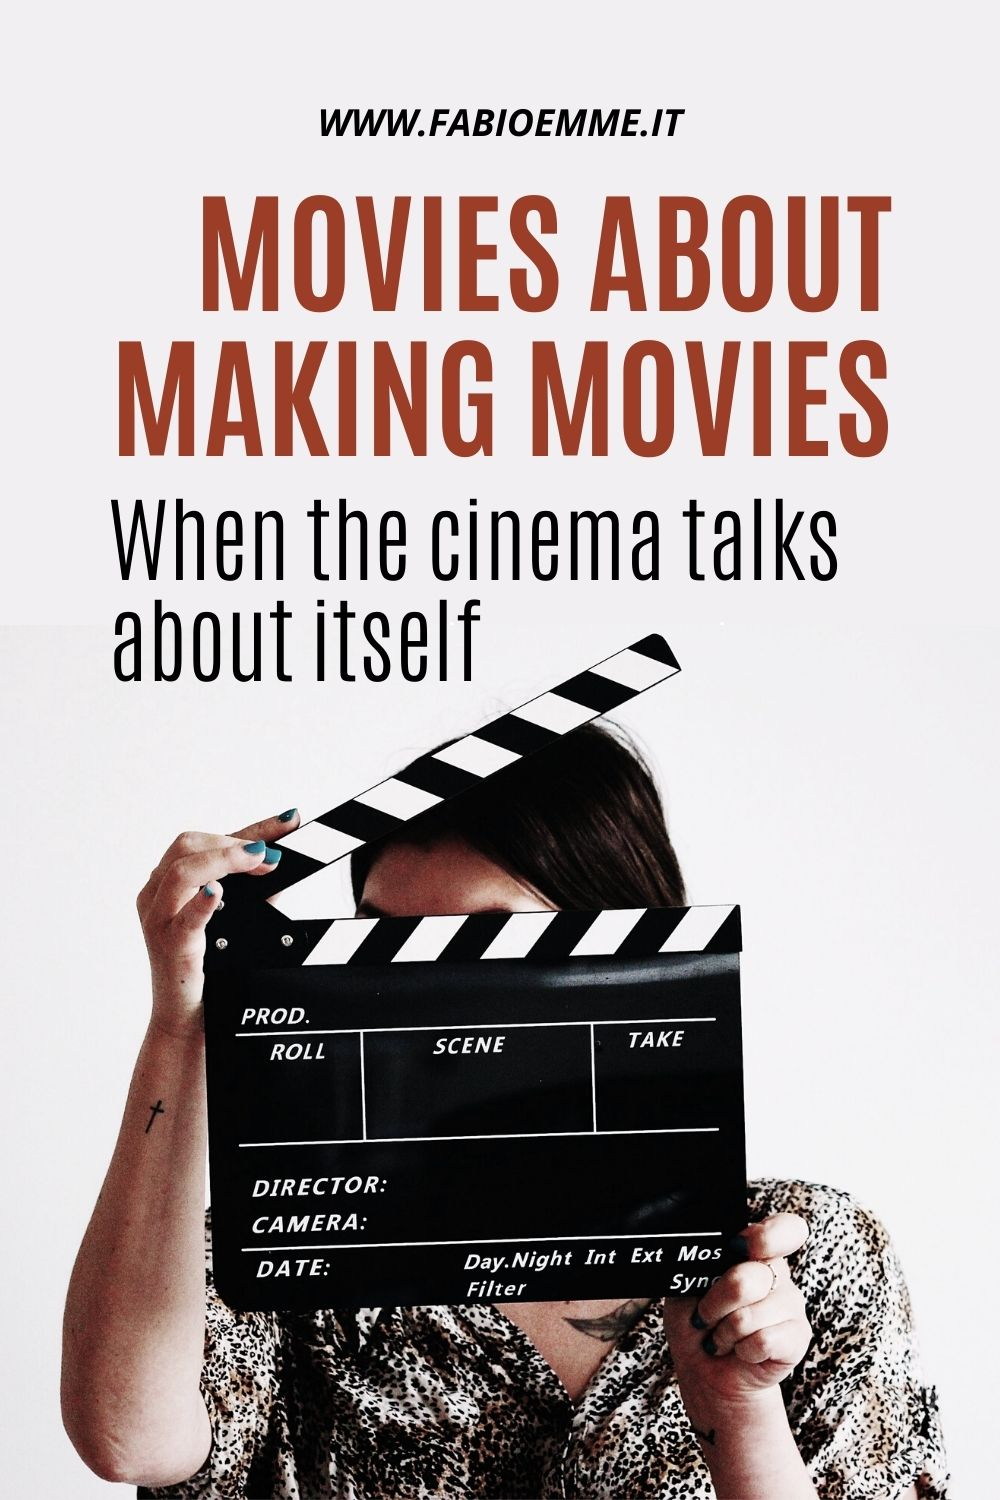 Movies where movies are made. We see the magic of cinema from another angle, behind the world made of the stuff of dreams. #MOVIES